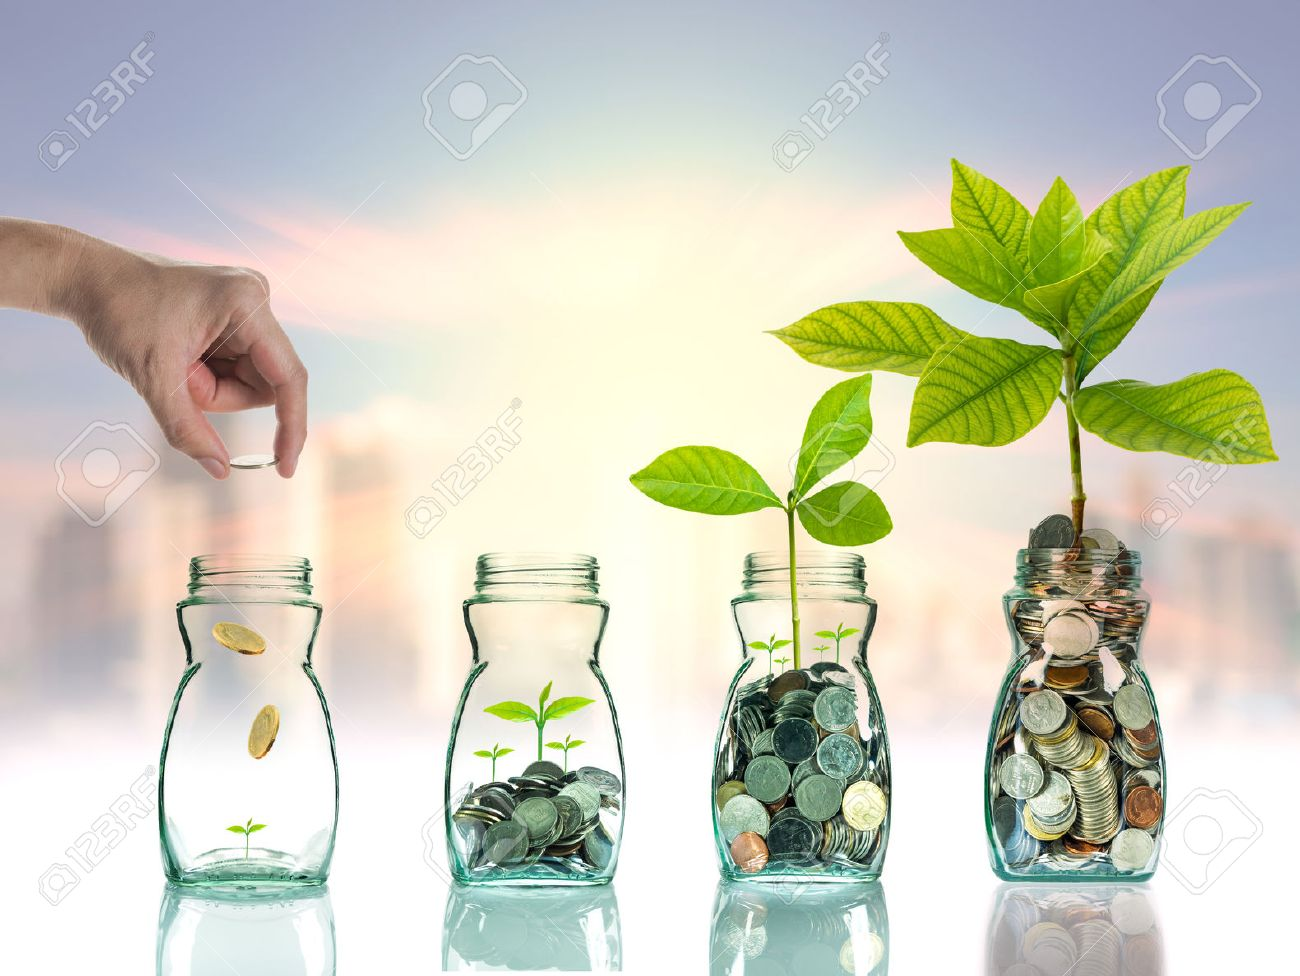 Hand putting mix coins and seed in clear bottle on cityscape photo blurred cityscape ,Business investment growth concept - 45039067